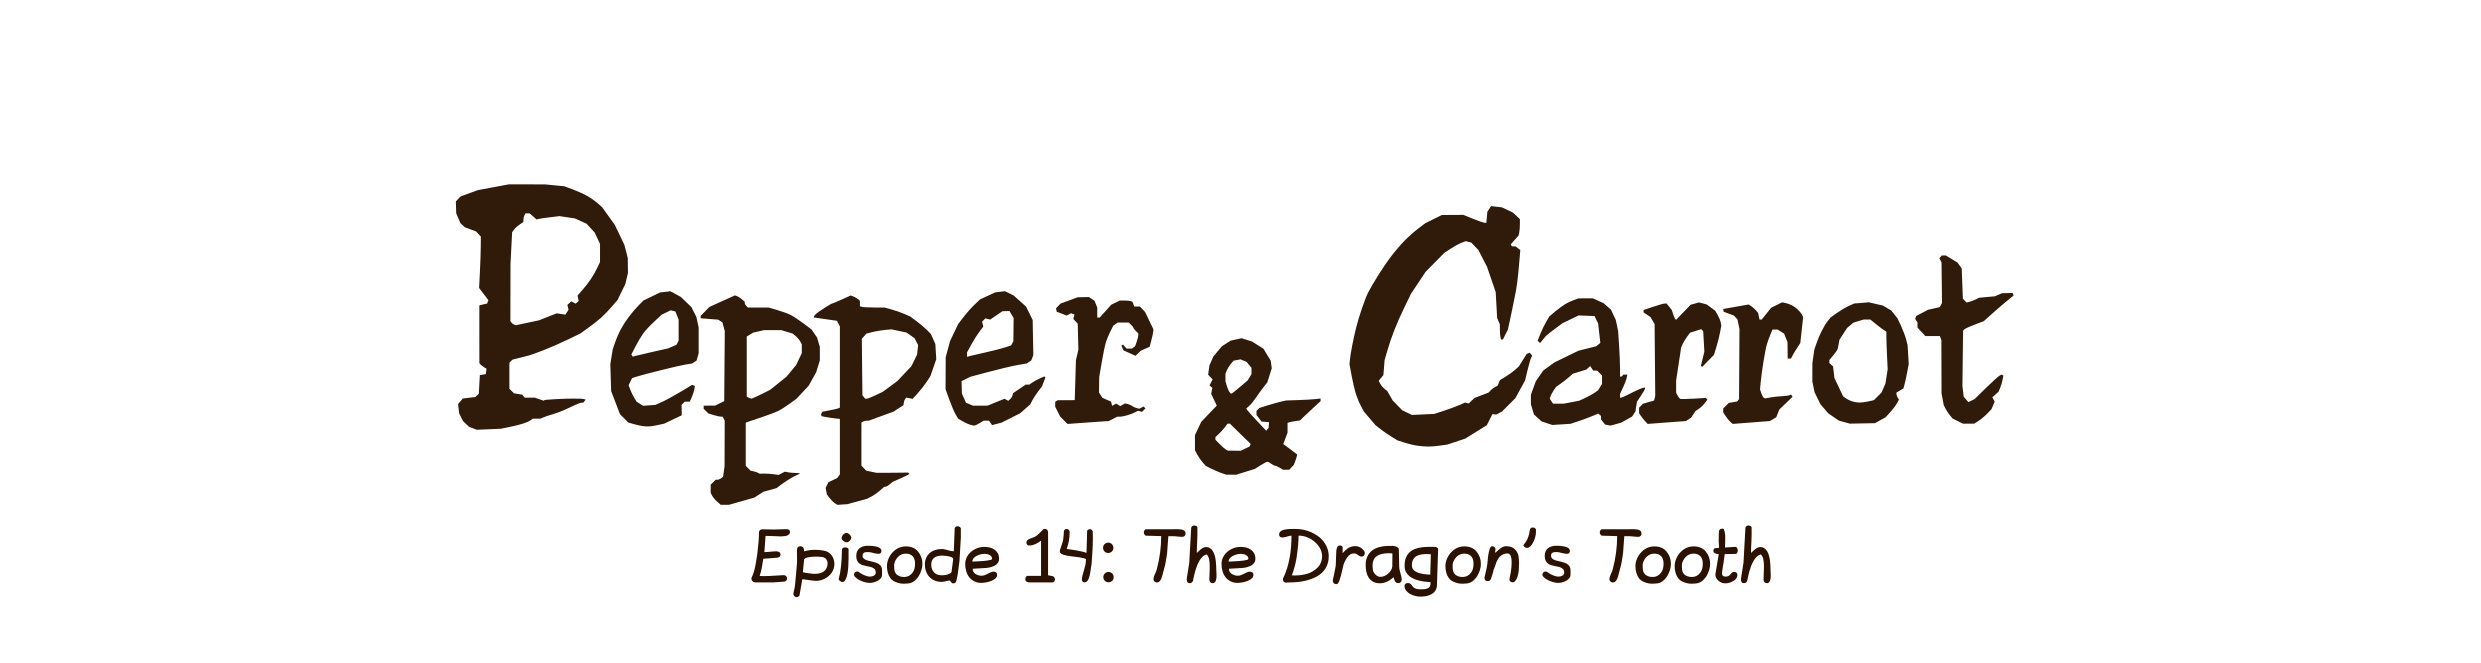 Episode 14: The Dragon's Tooth